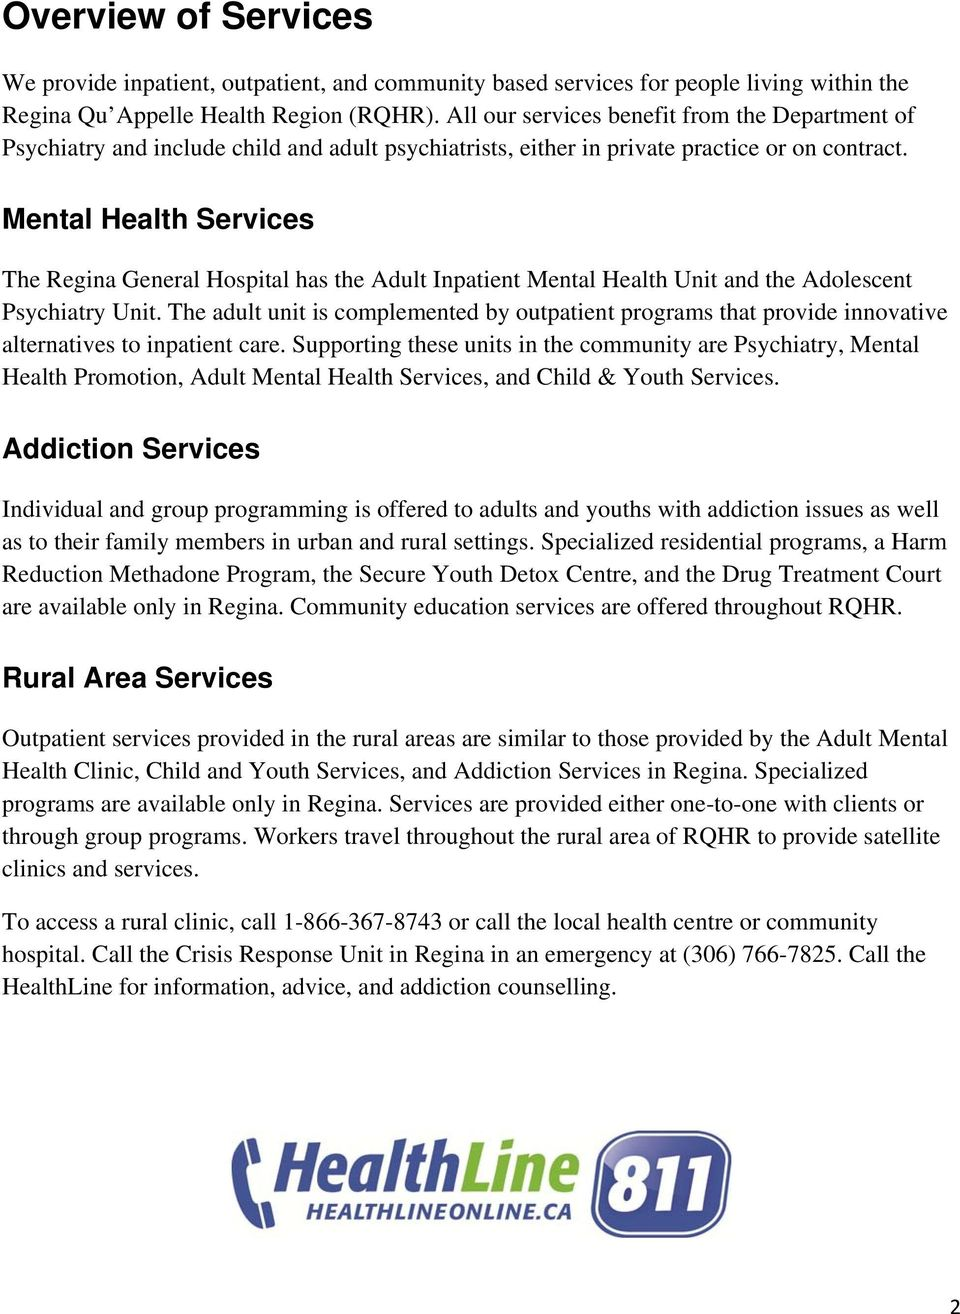 Mental Health Services The Regina General Hospital has the Adult Inpatient Mental Health Unit and the Adolescent Psychiatry Unit.